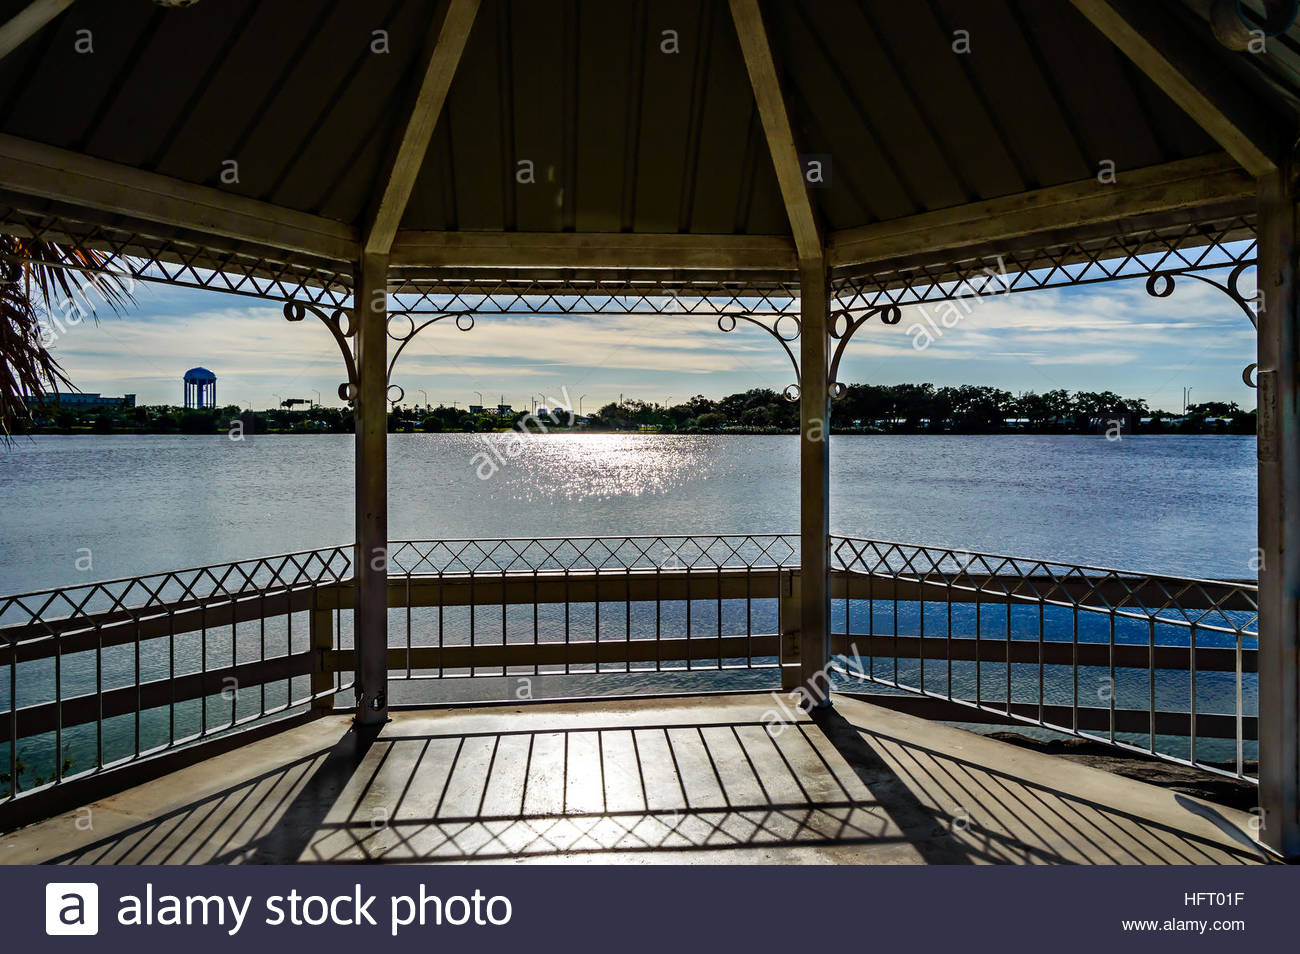 Photo showing the lake from inside the Gazebo and the sun glaring on the lake and floor. Stock Photo